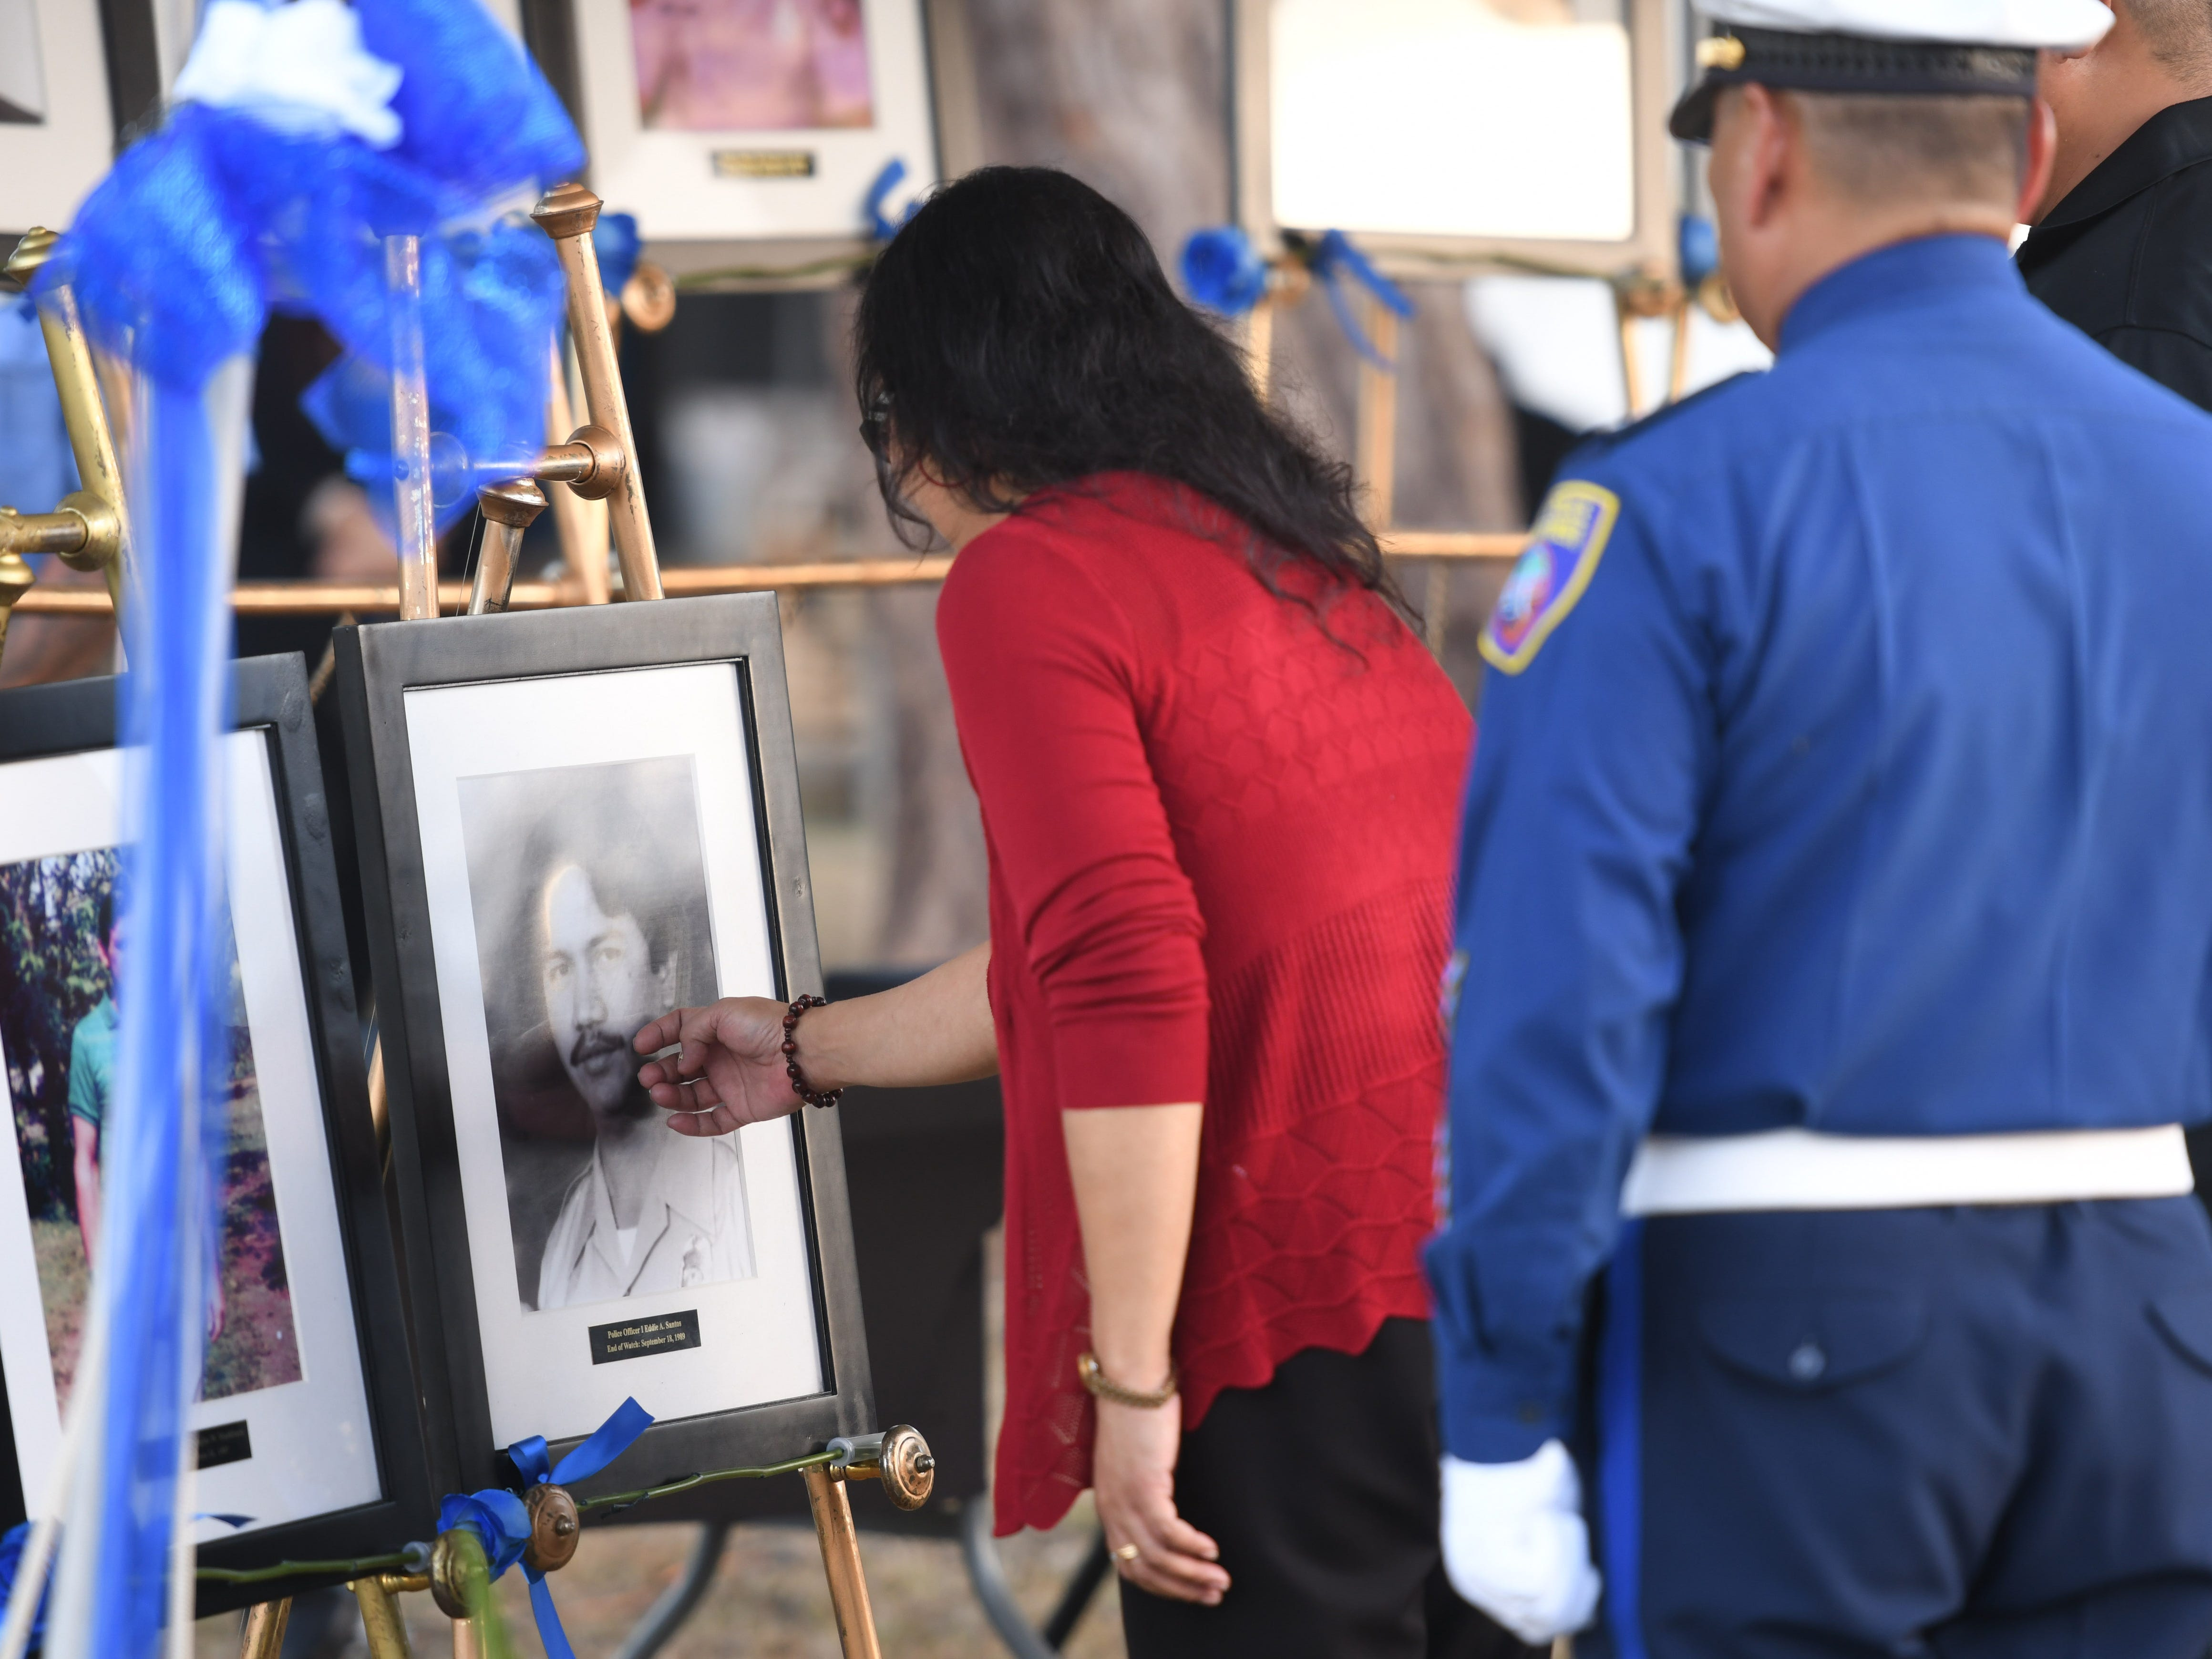 The service of Police Officer Eddie Santos is remembered during the Peace Officers' Memorial Service and Wreath Laying Ceremony held at the Guam Police Department's Badge Memorial Park in Hagåtña on Wednesday, May 15, 2019.